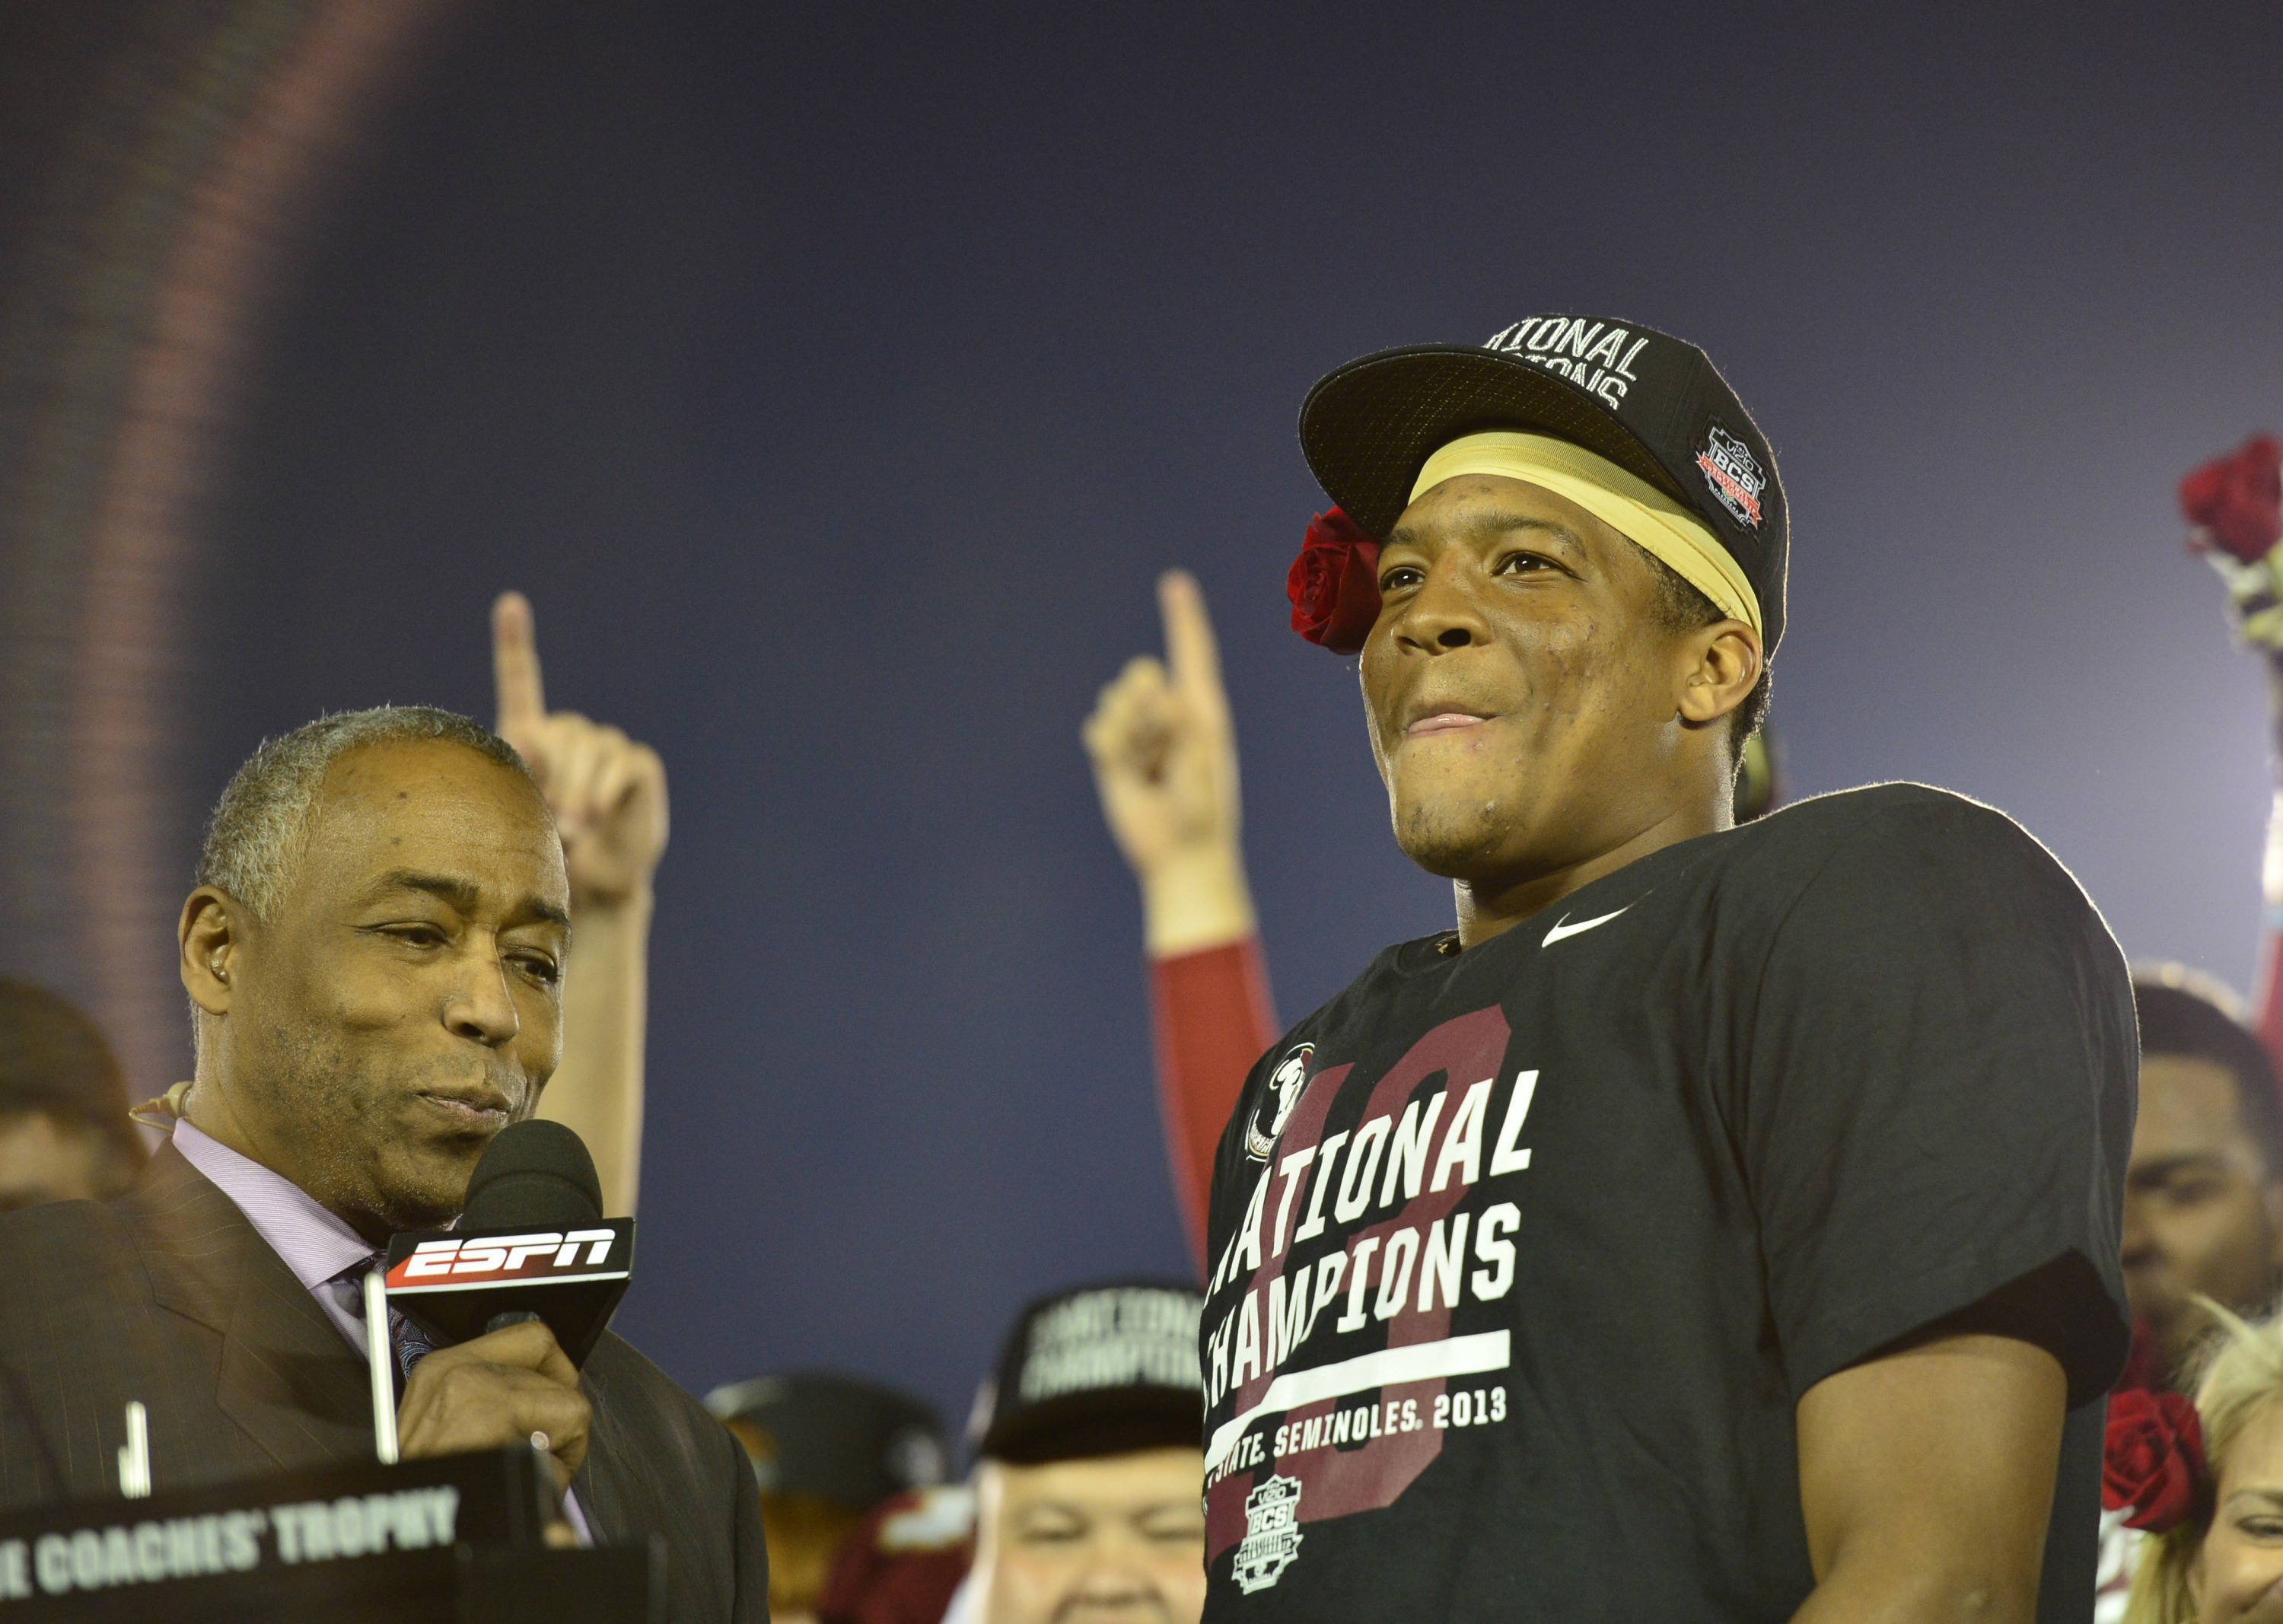 Jan 6, 2014; Pasadena, CA, USA; Florida State Seminoles quarterback Jameis Winston (5) is interviewed after winning the 2014 BCS National Championship game against Auburn Tigers 34-31 at the Rose Bowl.  Mandatory Credit: Richard Mackson-USA TODAY Sports